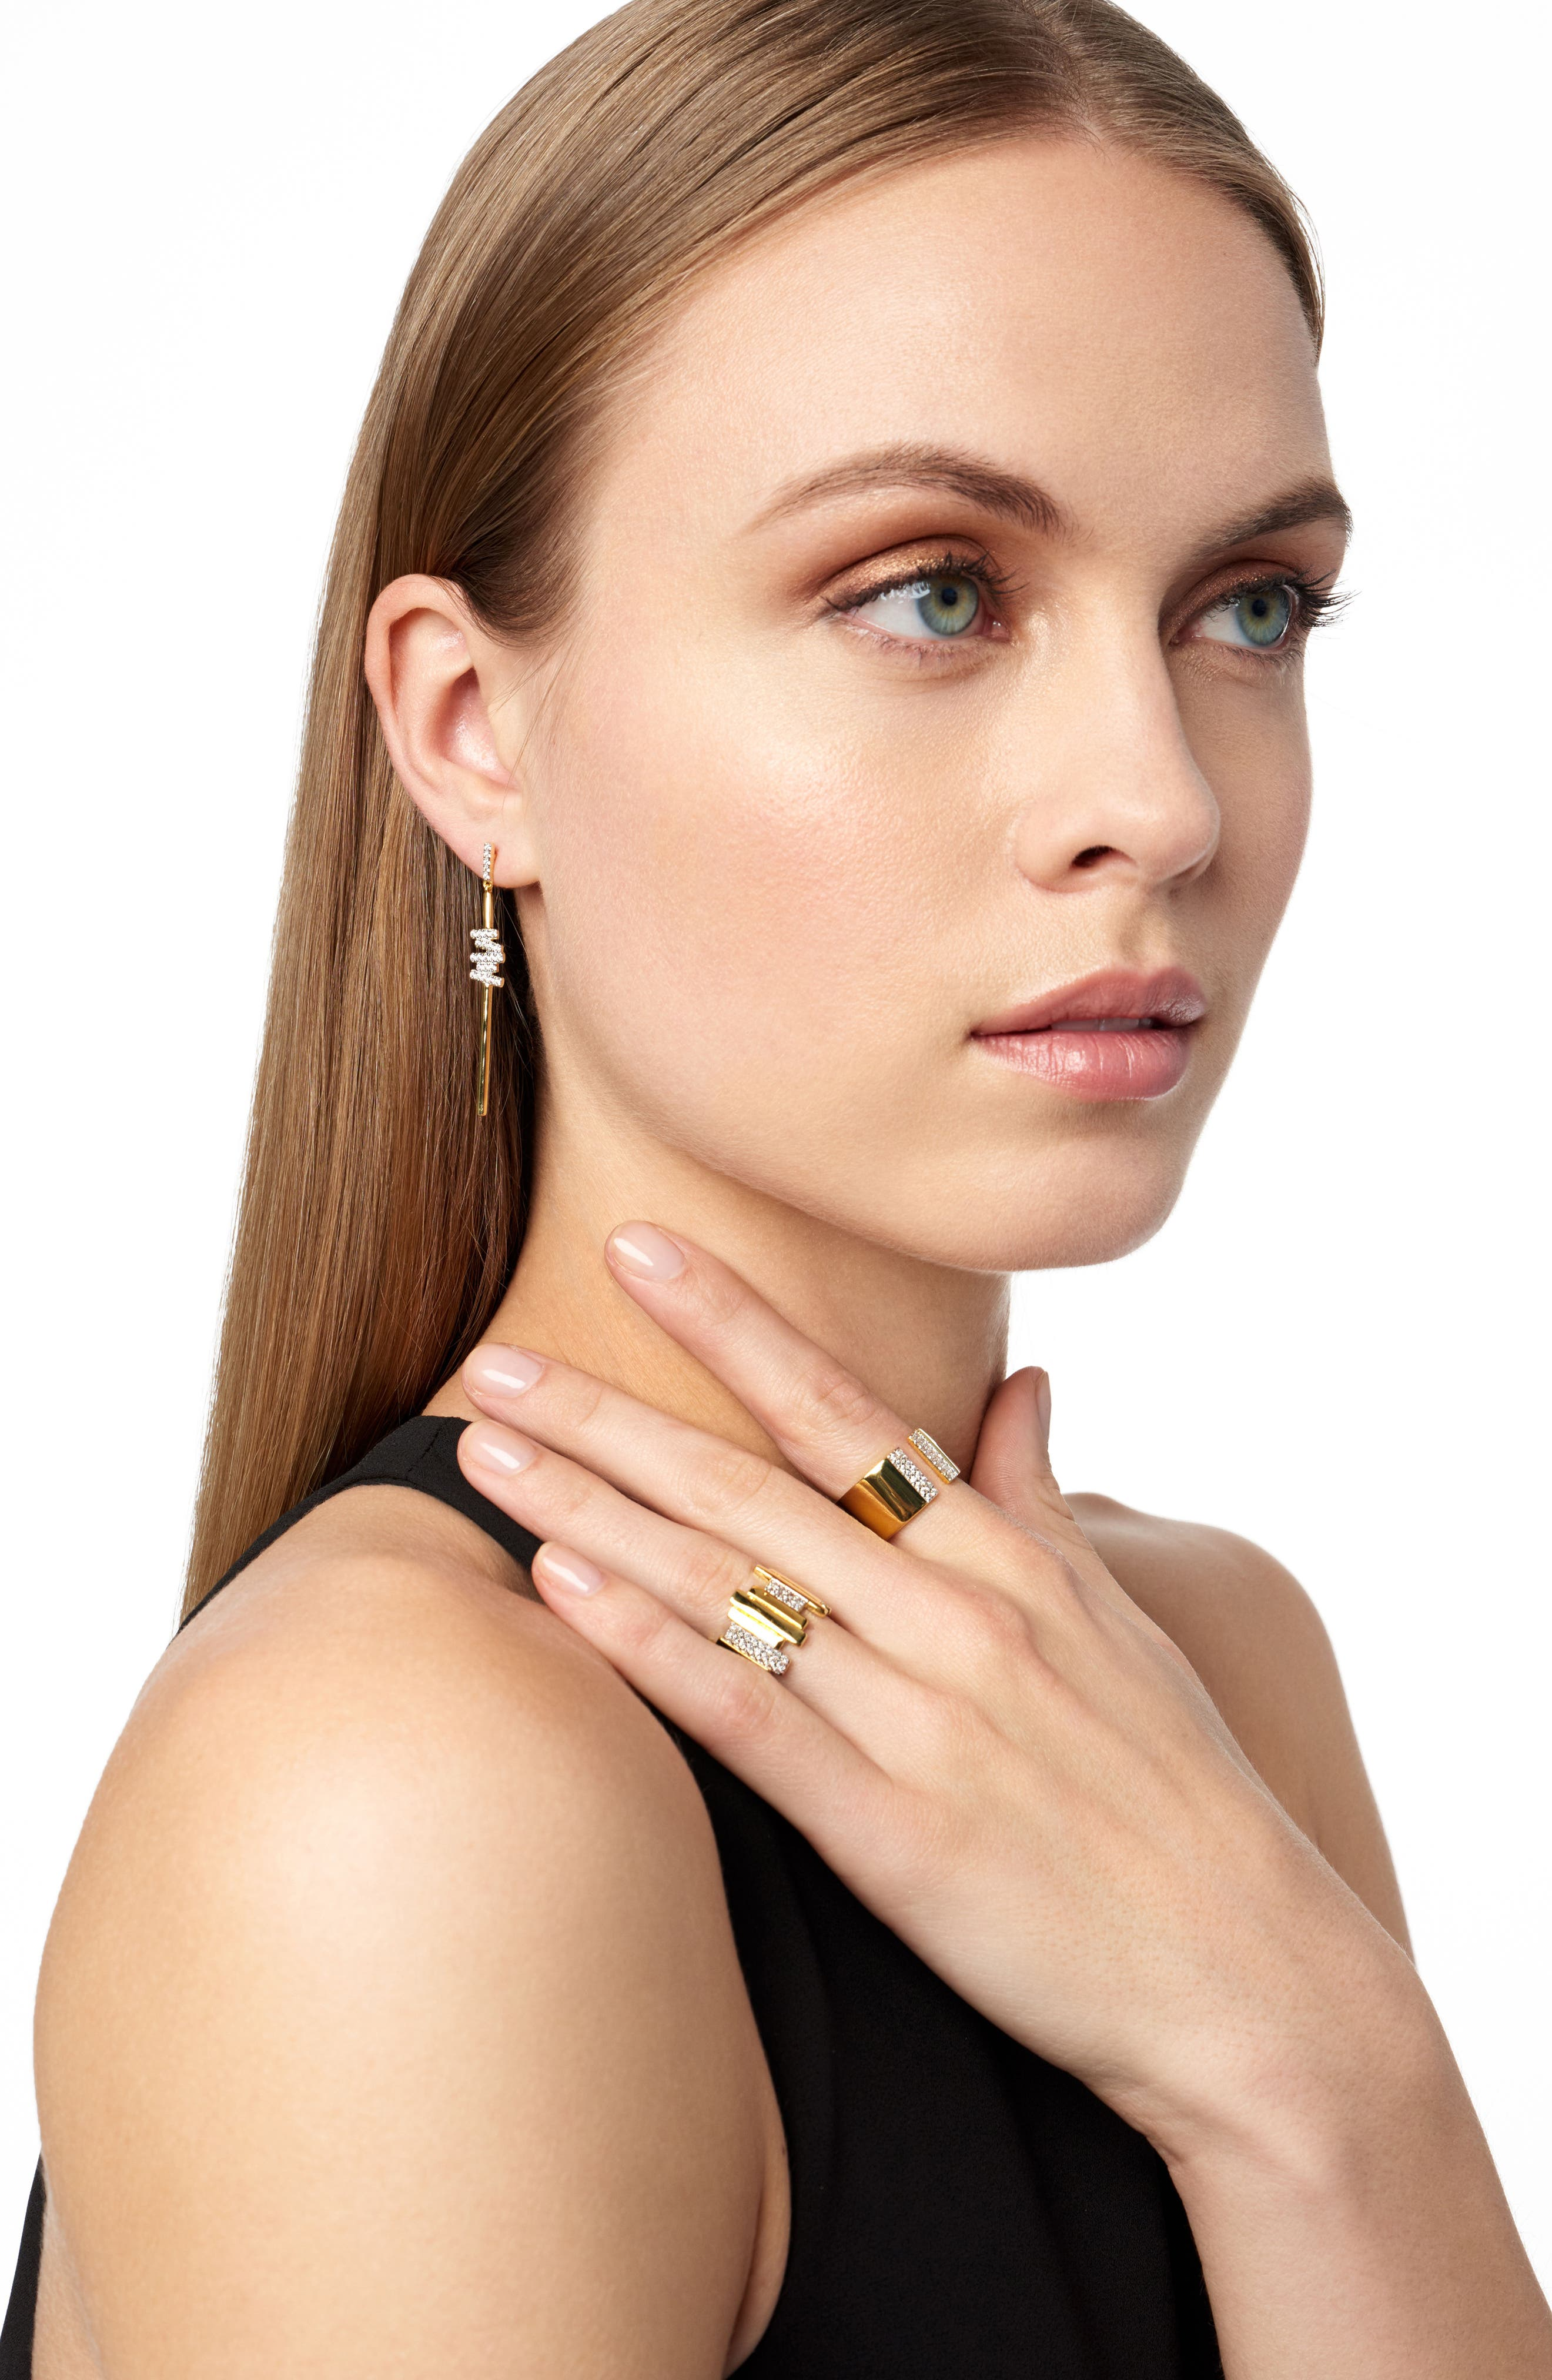 Radiance Cubic Zirconia Drop Earrings,                             Alternate thumbnail 2, color,                             SILVER/ GOLD